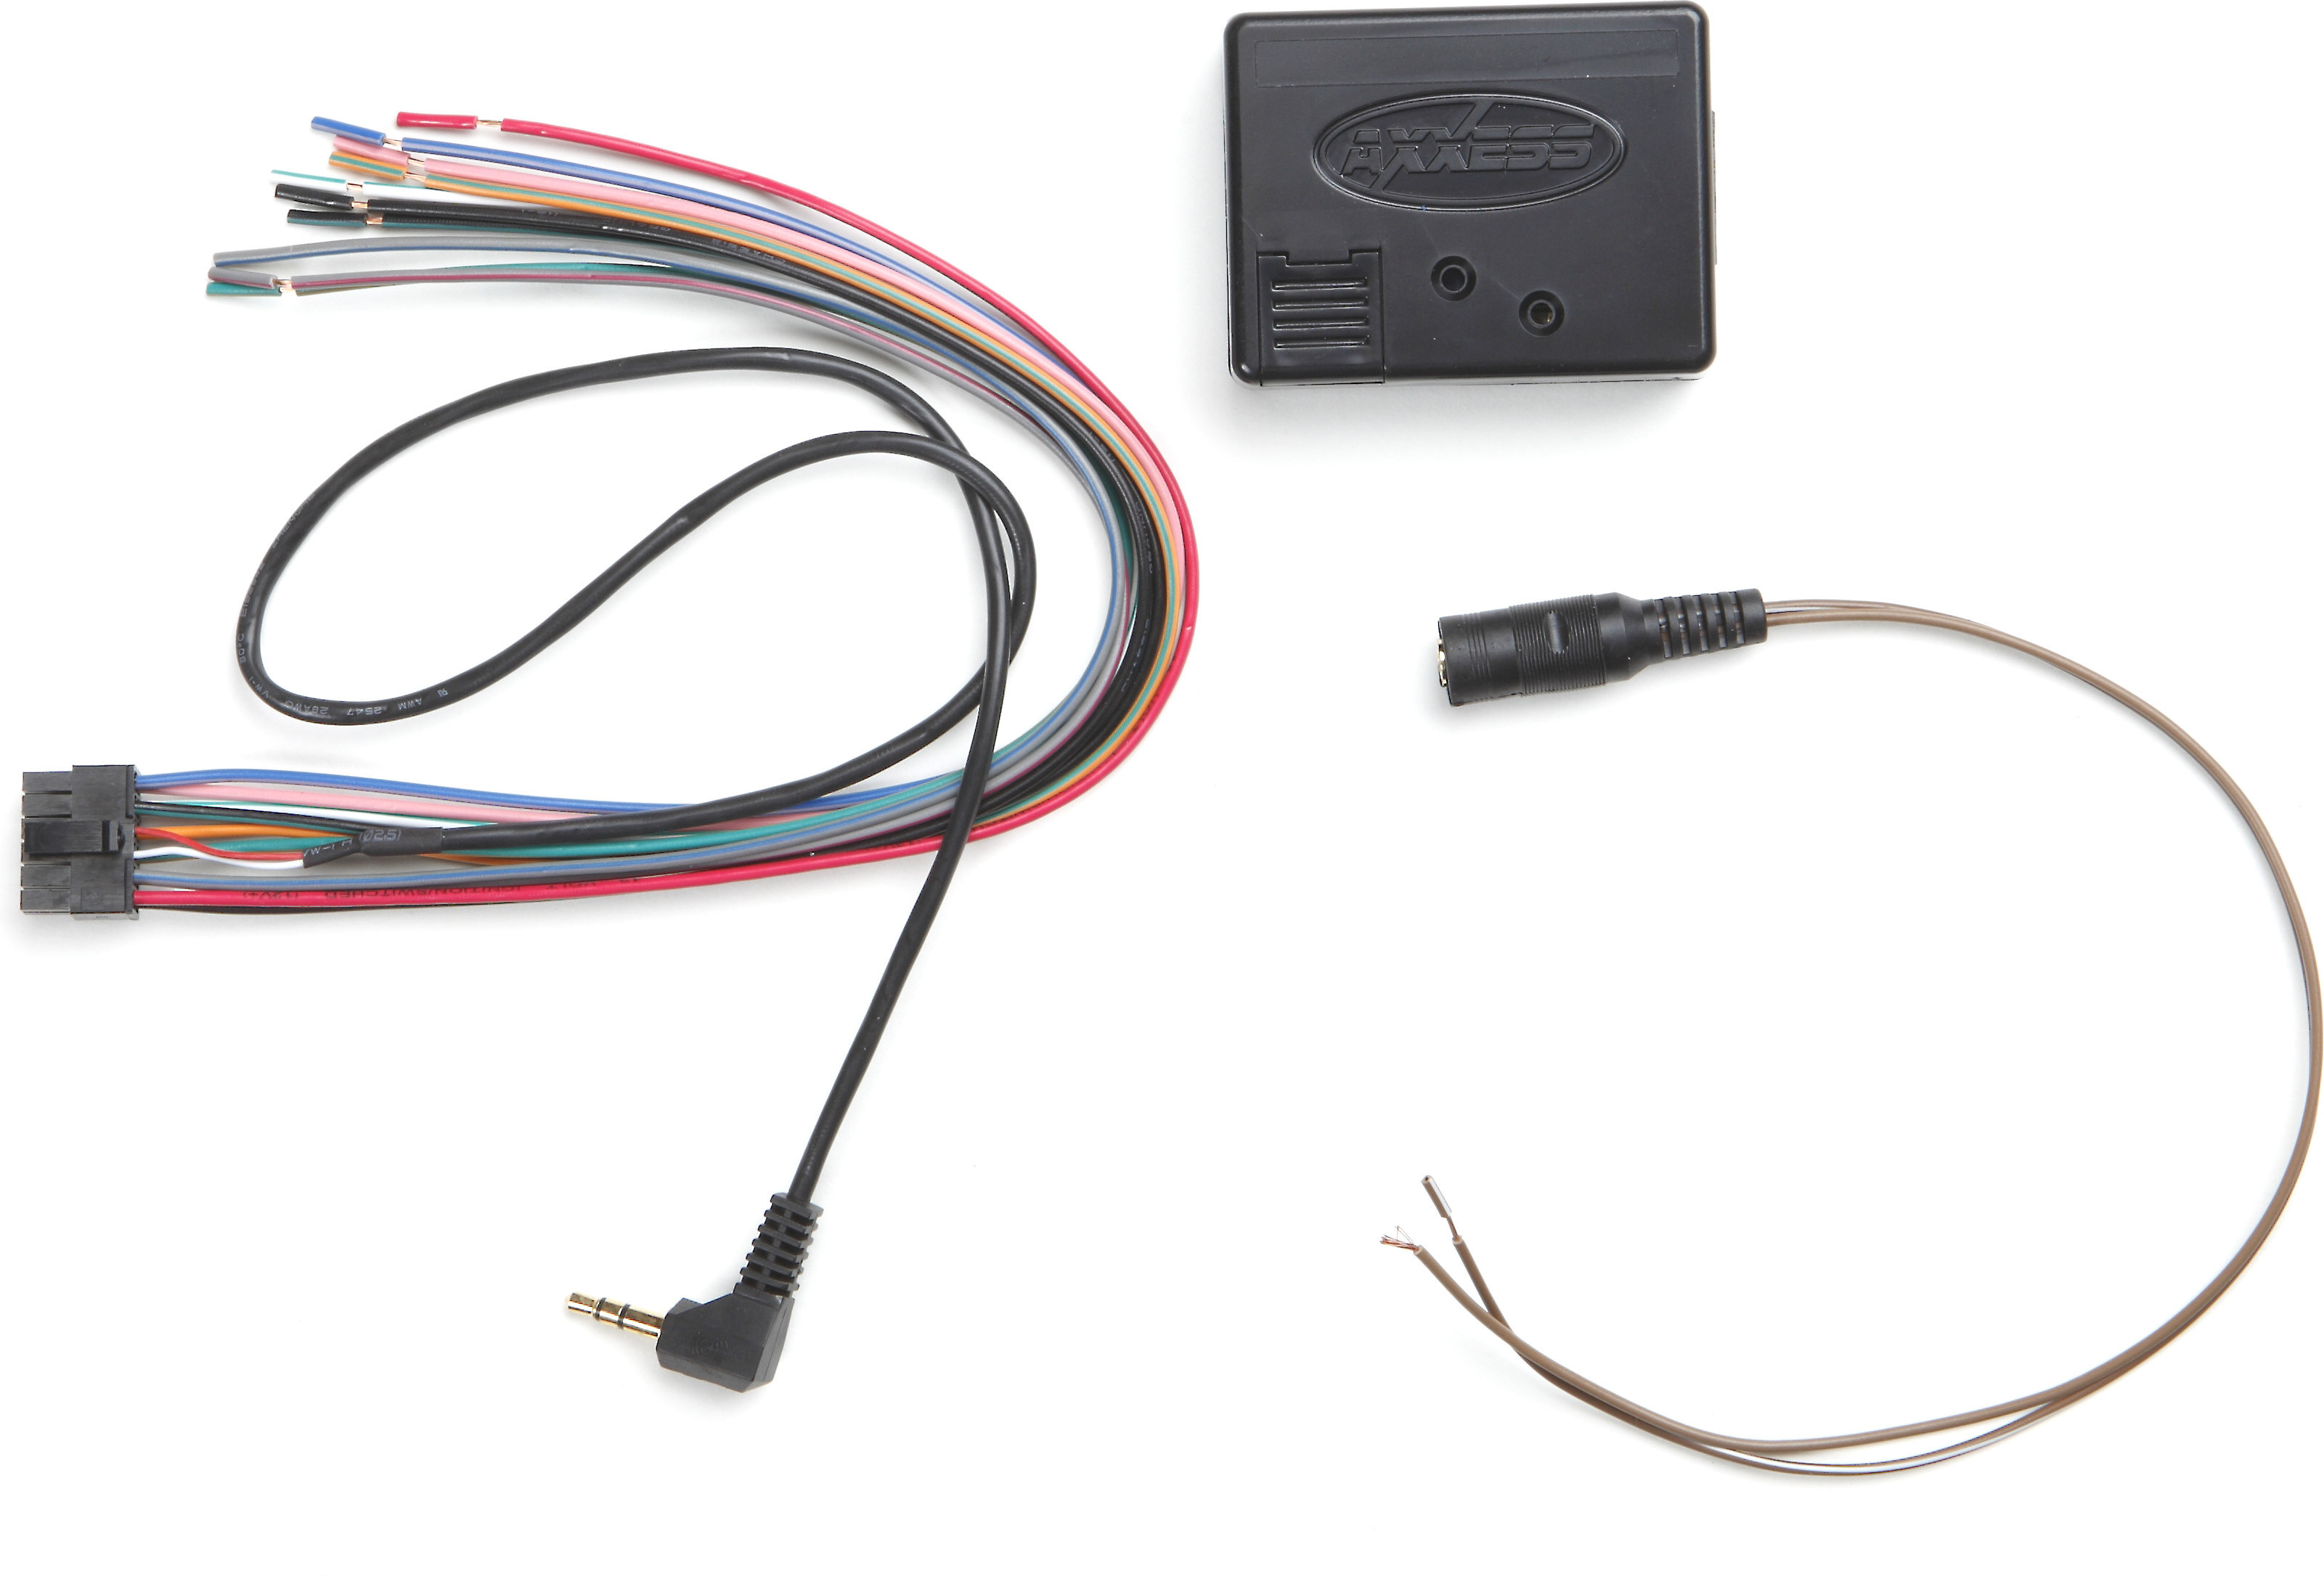 Axs ASWC-1 Steering Wheel Control Adapter Connects your car's steering on 2001 jetta dome light harness, goldfish harness, dual car stereo wire harness, vw ignition wiring, vw wiring kit, 68 vw wire harness, vw bus regulator wiring, vw wiring diagrams, vw beetle carburetor wiring, vw coil wiring, vw bus wiring location, figure 8 cat harness, vw engine wiring, vw headlight wiring, vw starter wiring, vw alternator wiring, besi harness,